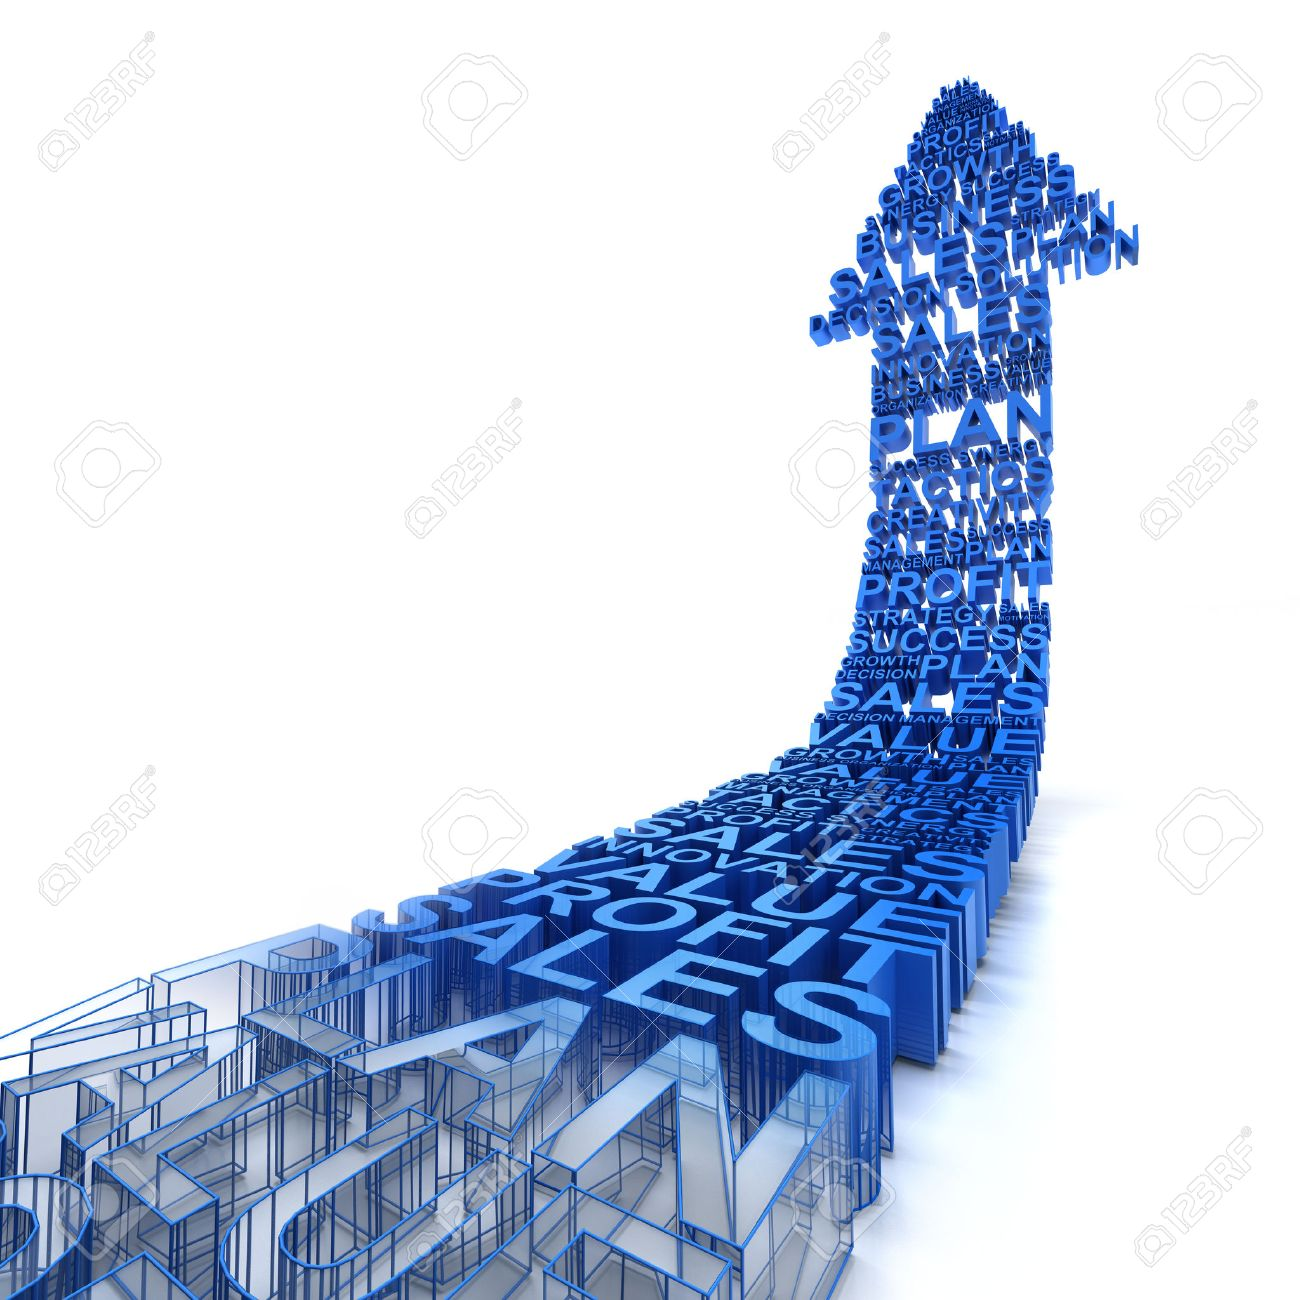 3d arrows formed by business related words, fading from wireframe to solid - 40319542